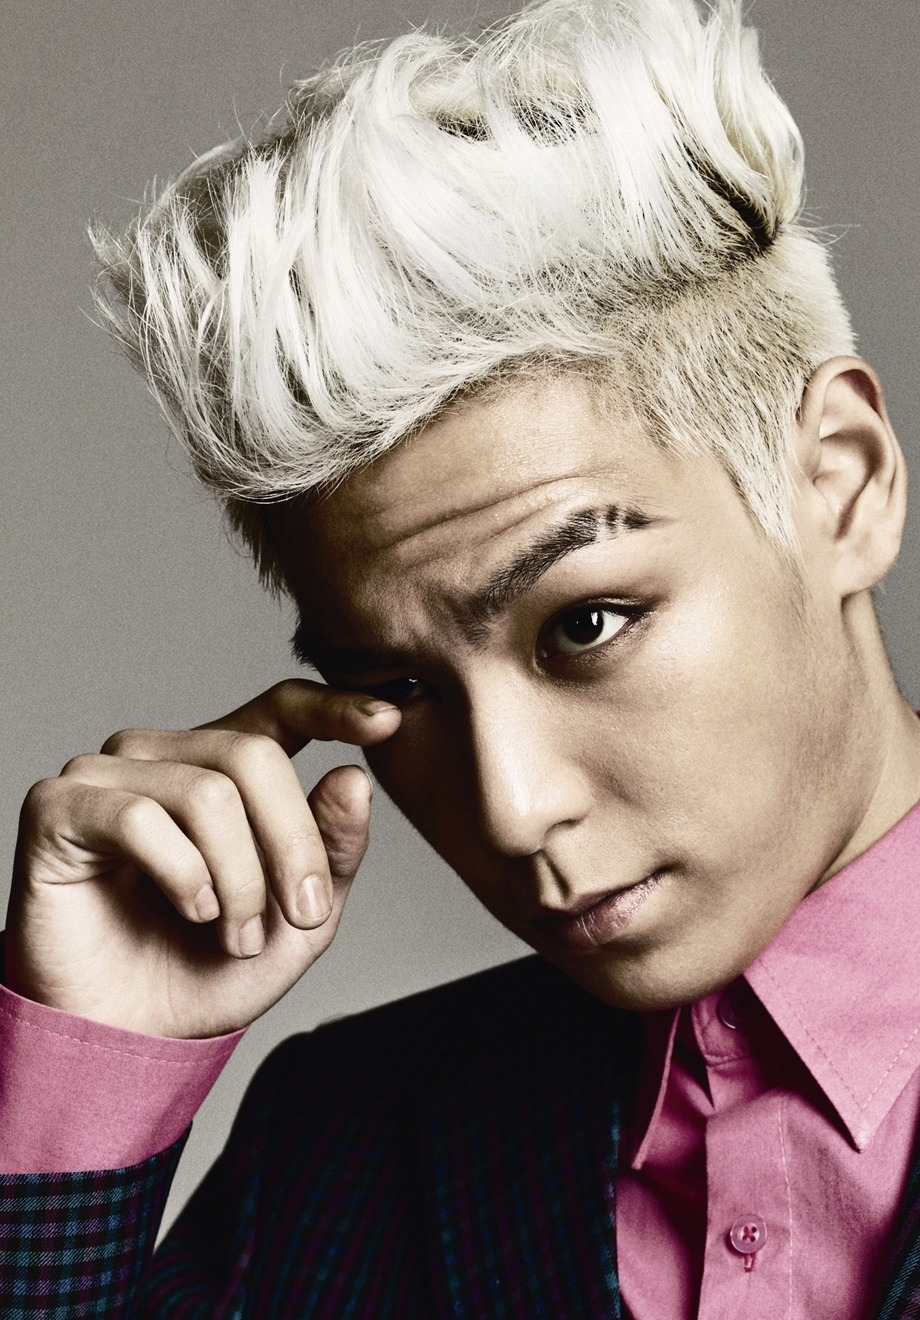 t o p profile kpop music